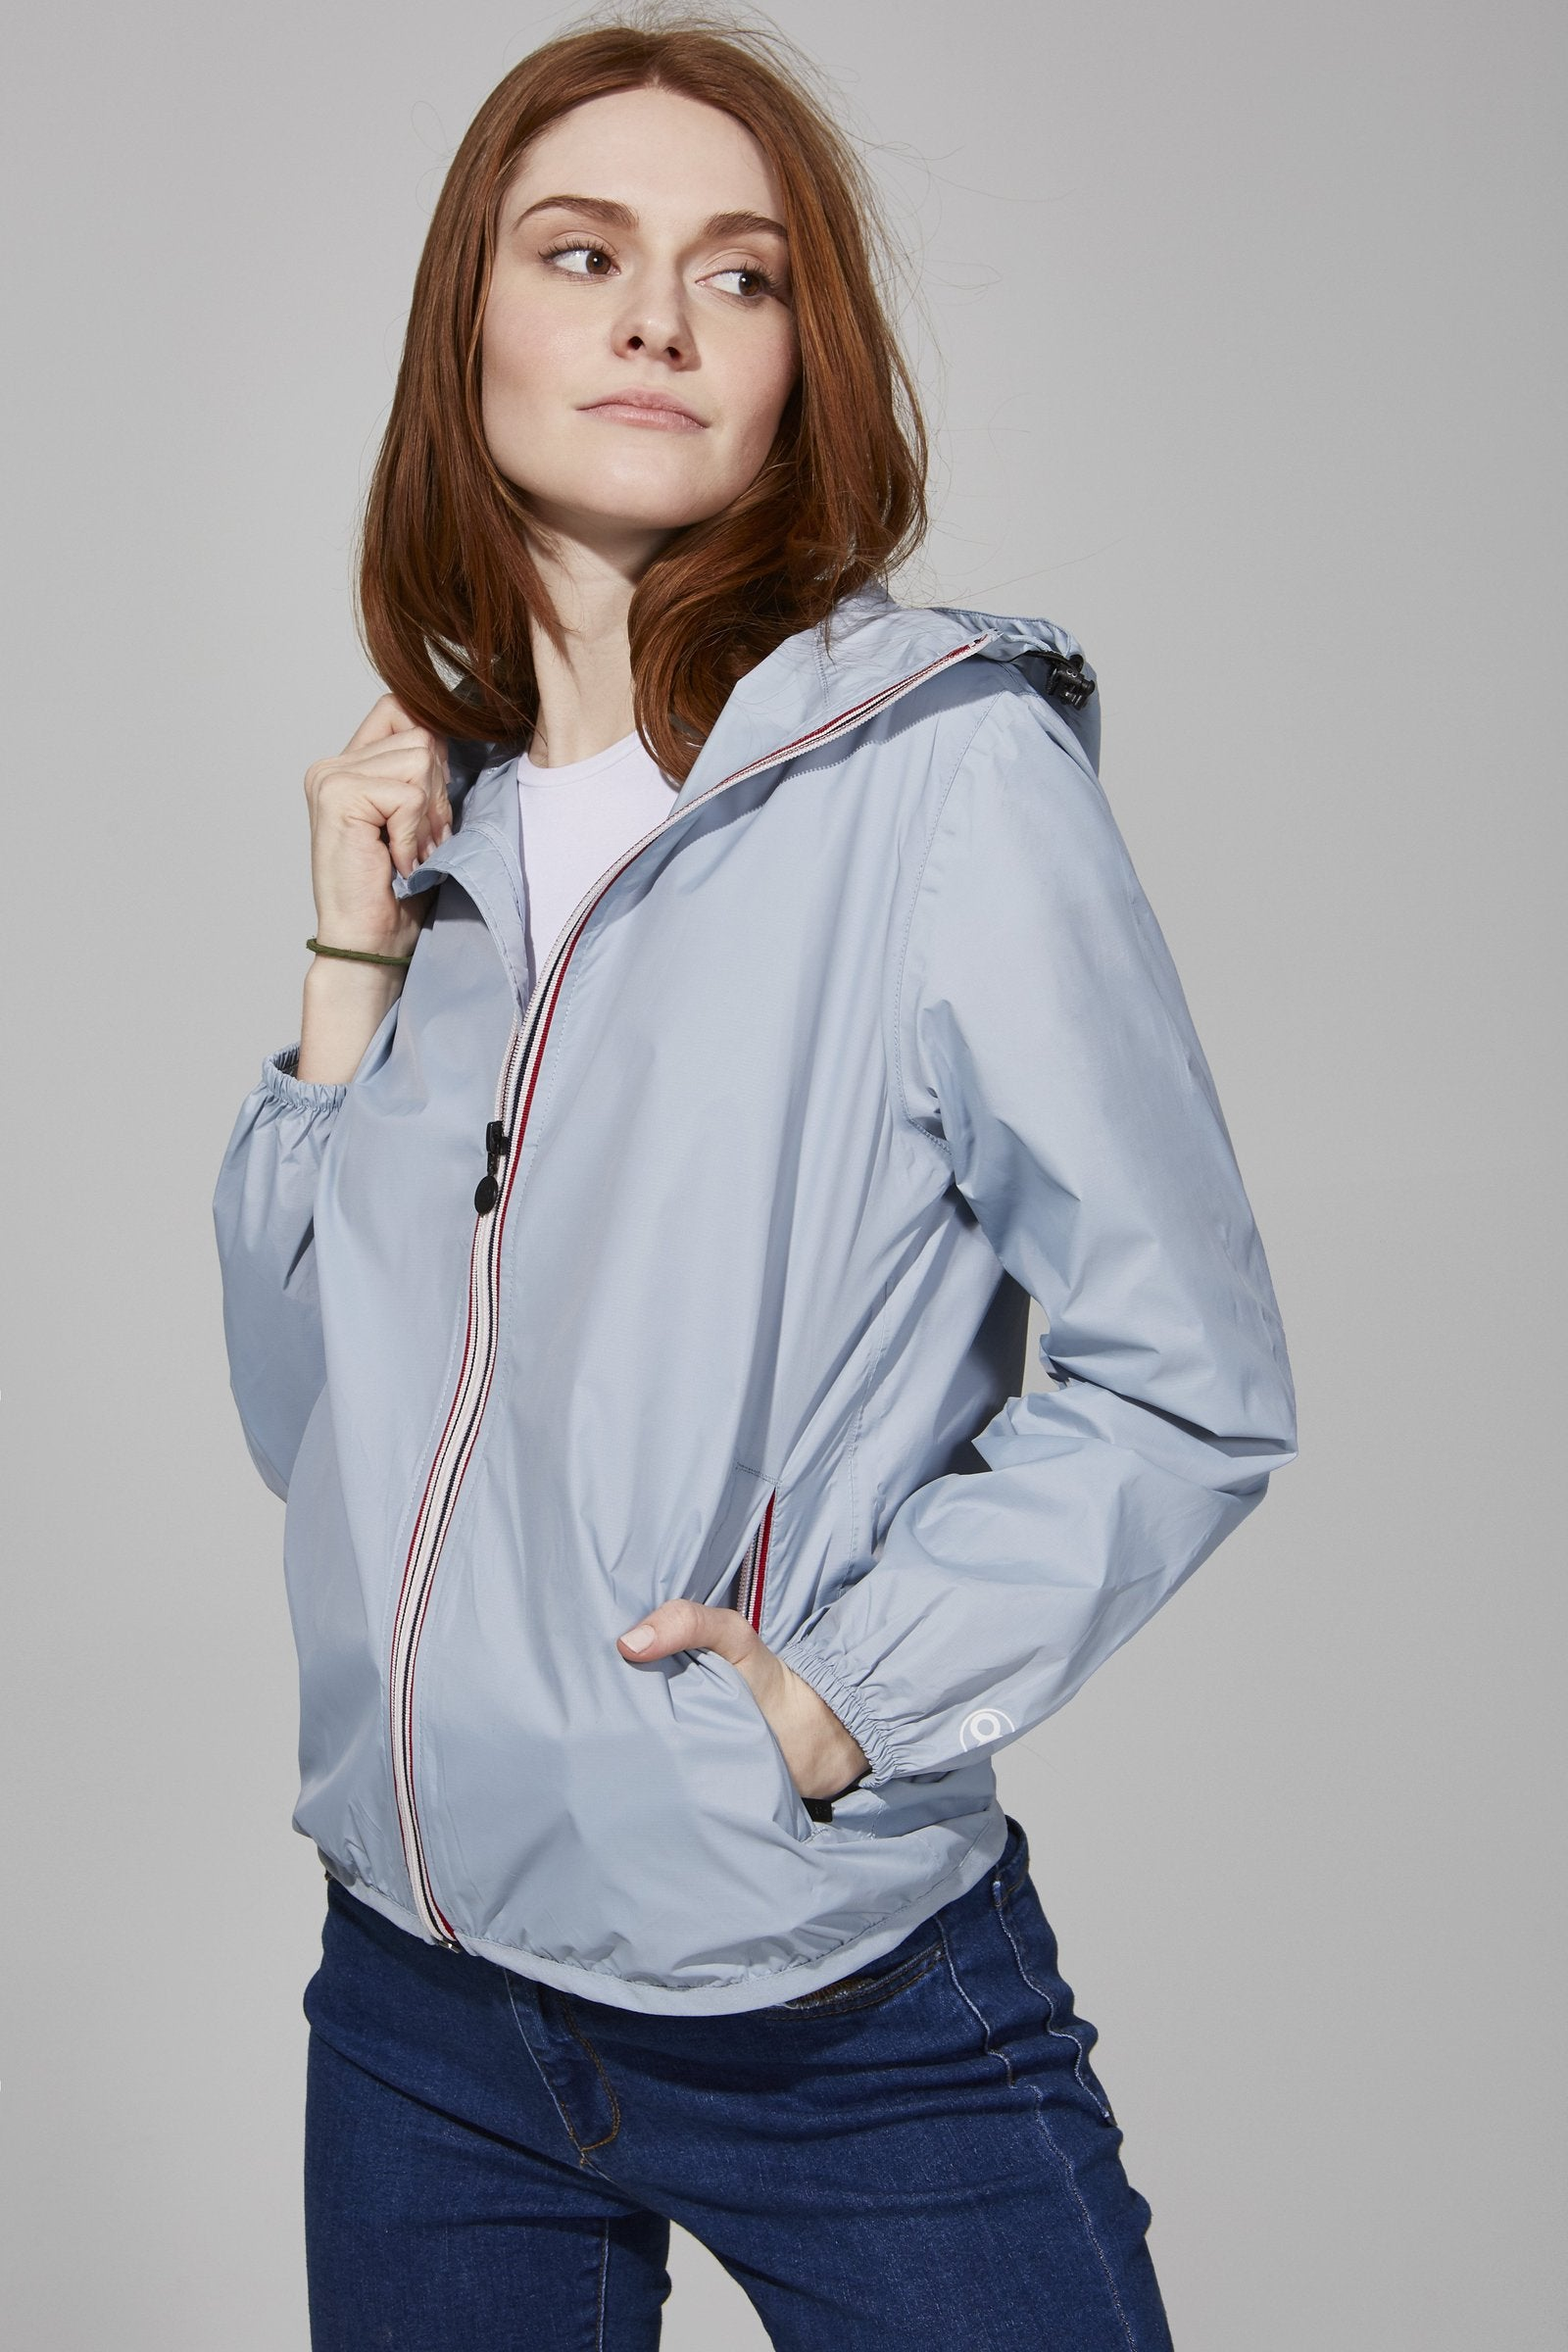 Sloane - Full Zip Packable Rain Jacket